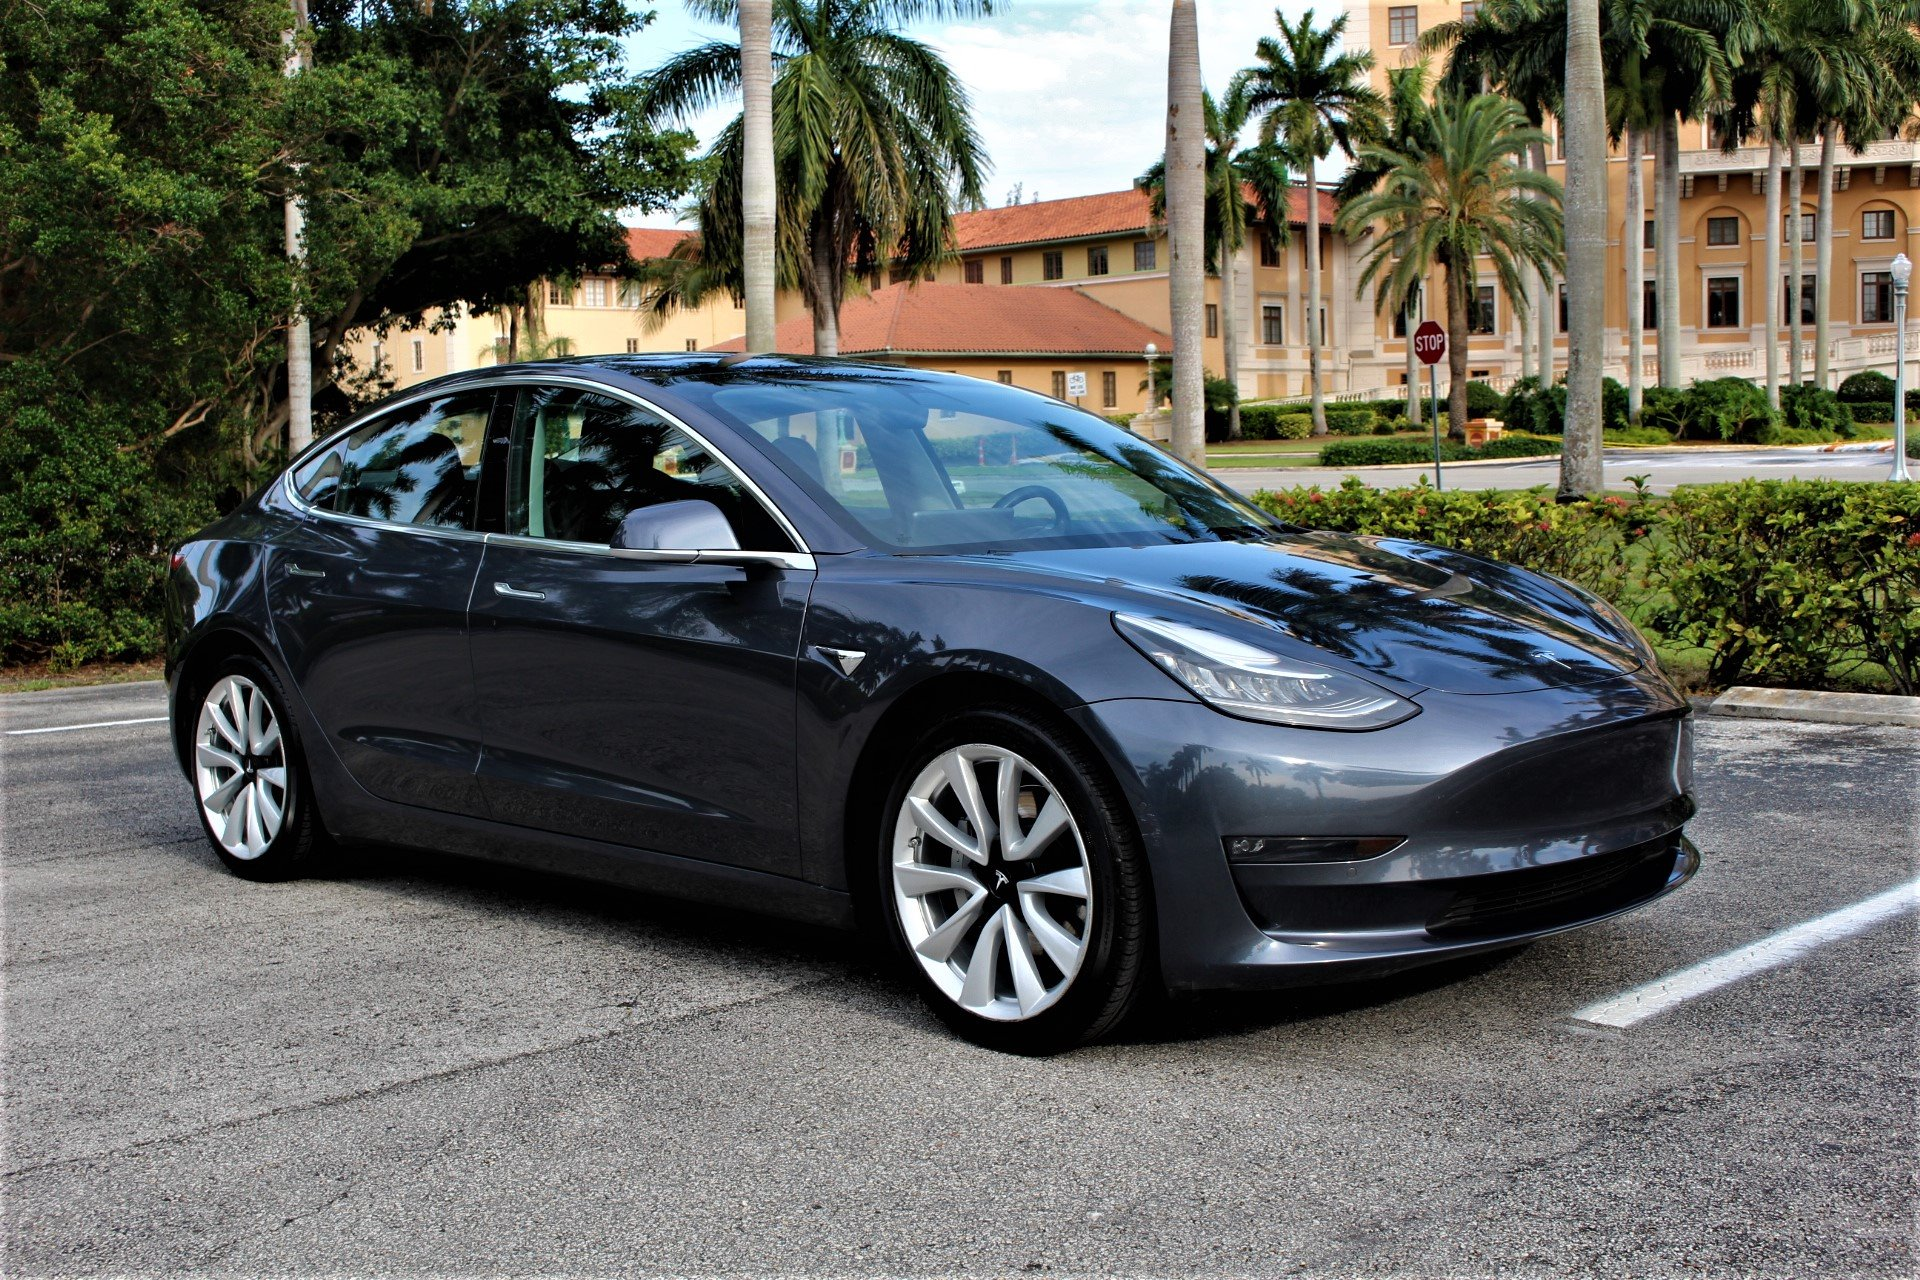 Used 2018 Tesla Model 3 Long Range for sale Sold at The Gables Sports Cars in Miami FL 33146 4